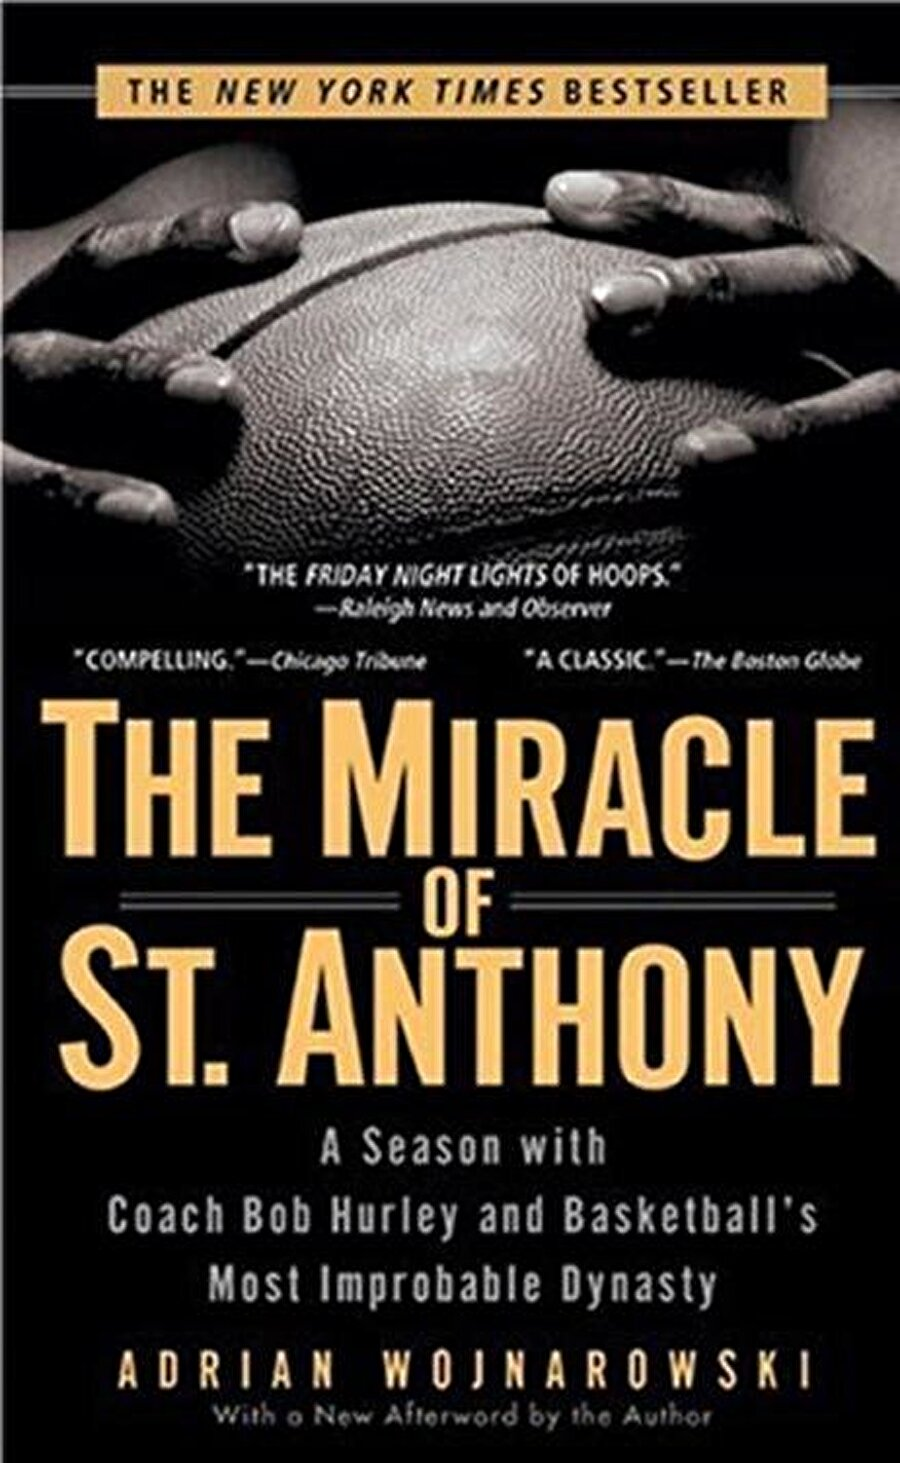 THE BOOK OF BASKETBALL: THE NBA ACCORDING TO THE SPORTS GUY: Bill Simmons